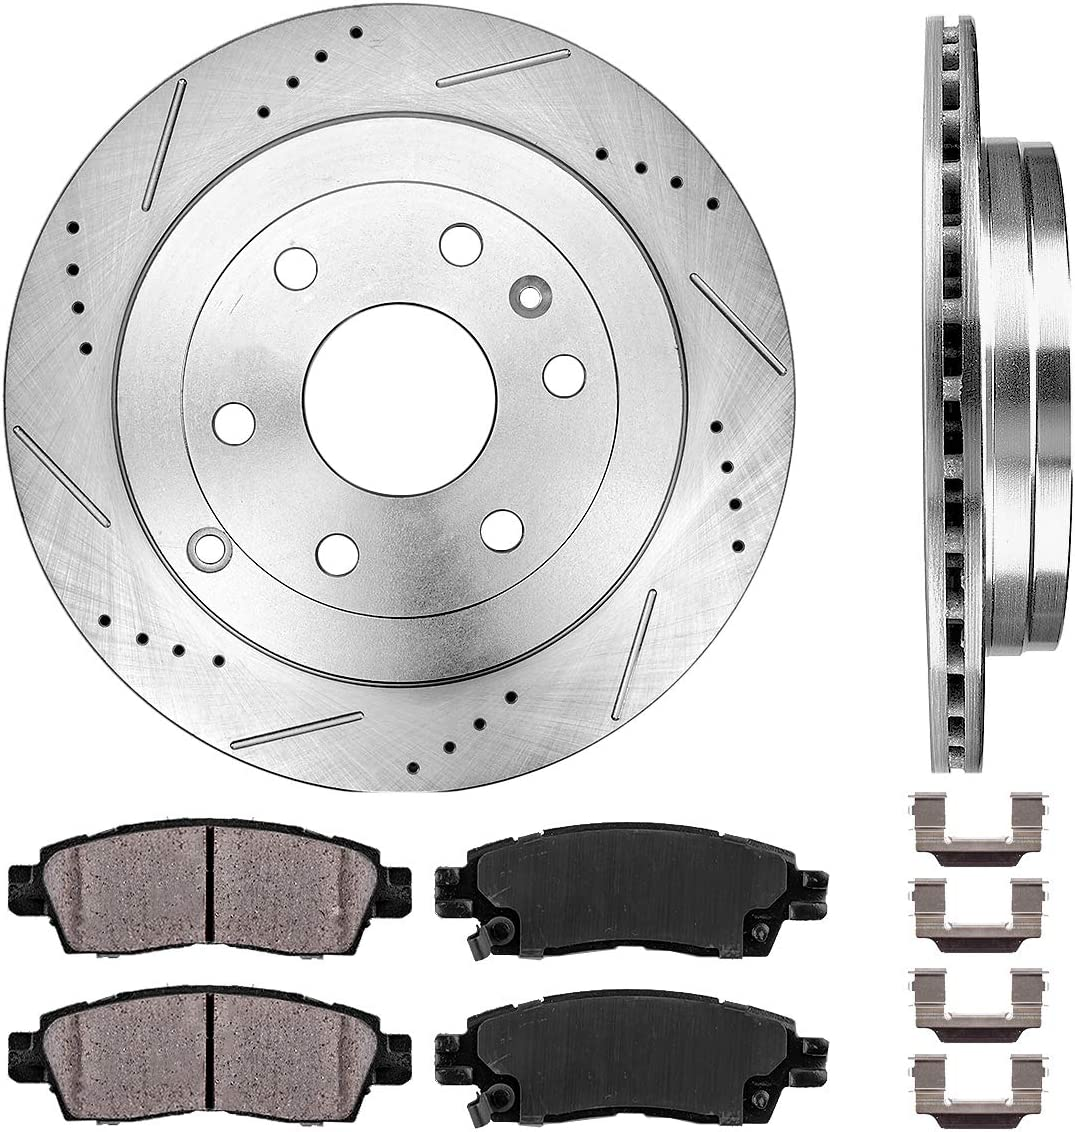 - 2007-16 GMC Acadia - 2007-10 Saturn Outlook Pair 2009-17 Chevy Traverse 2 Detroit Axle Front Drilled and Slotted Disc Brake Rotors w//Ceramic Pads for 2008-17 Buick Enclave -